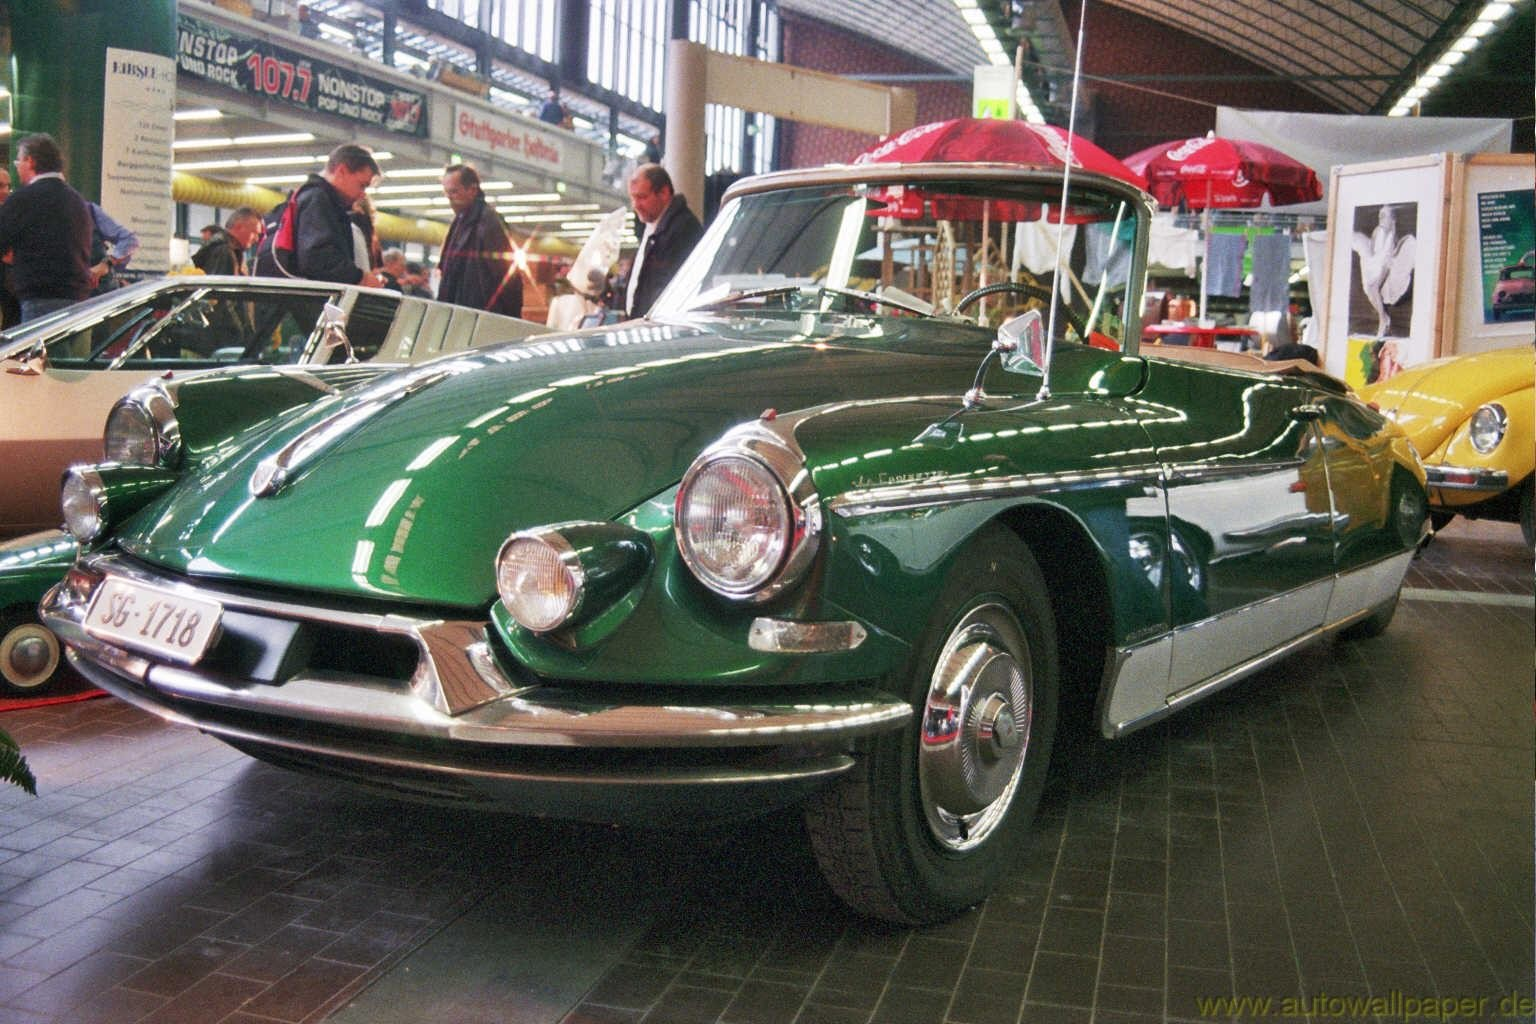 Citroen DS 19 Cabriolet - cars catalog, specs, features, photos, videos,